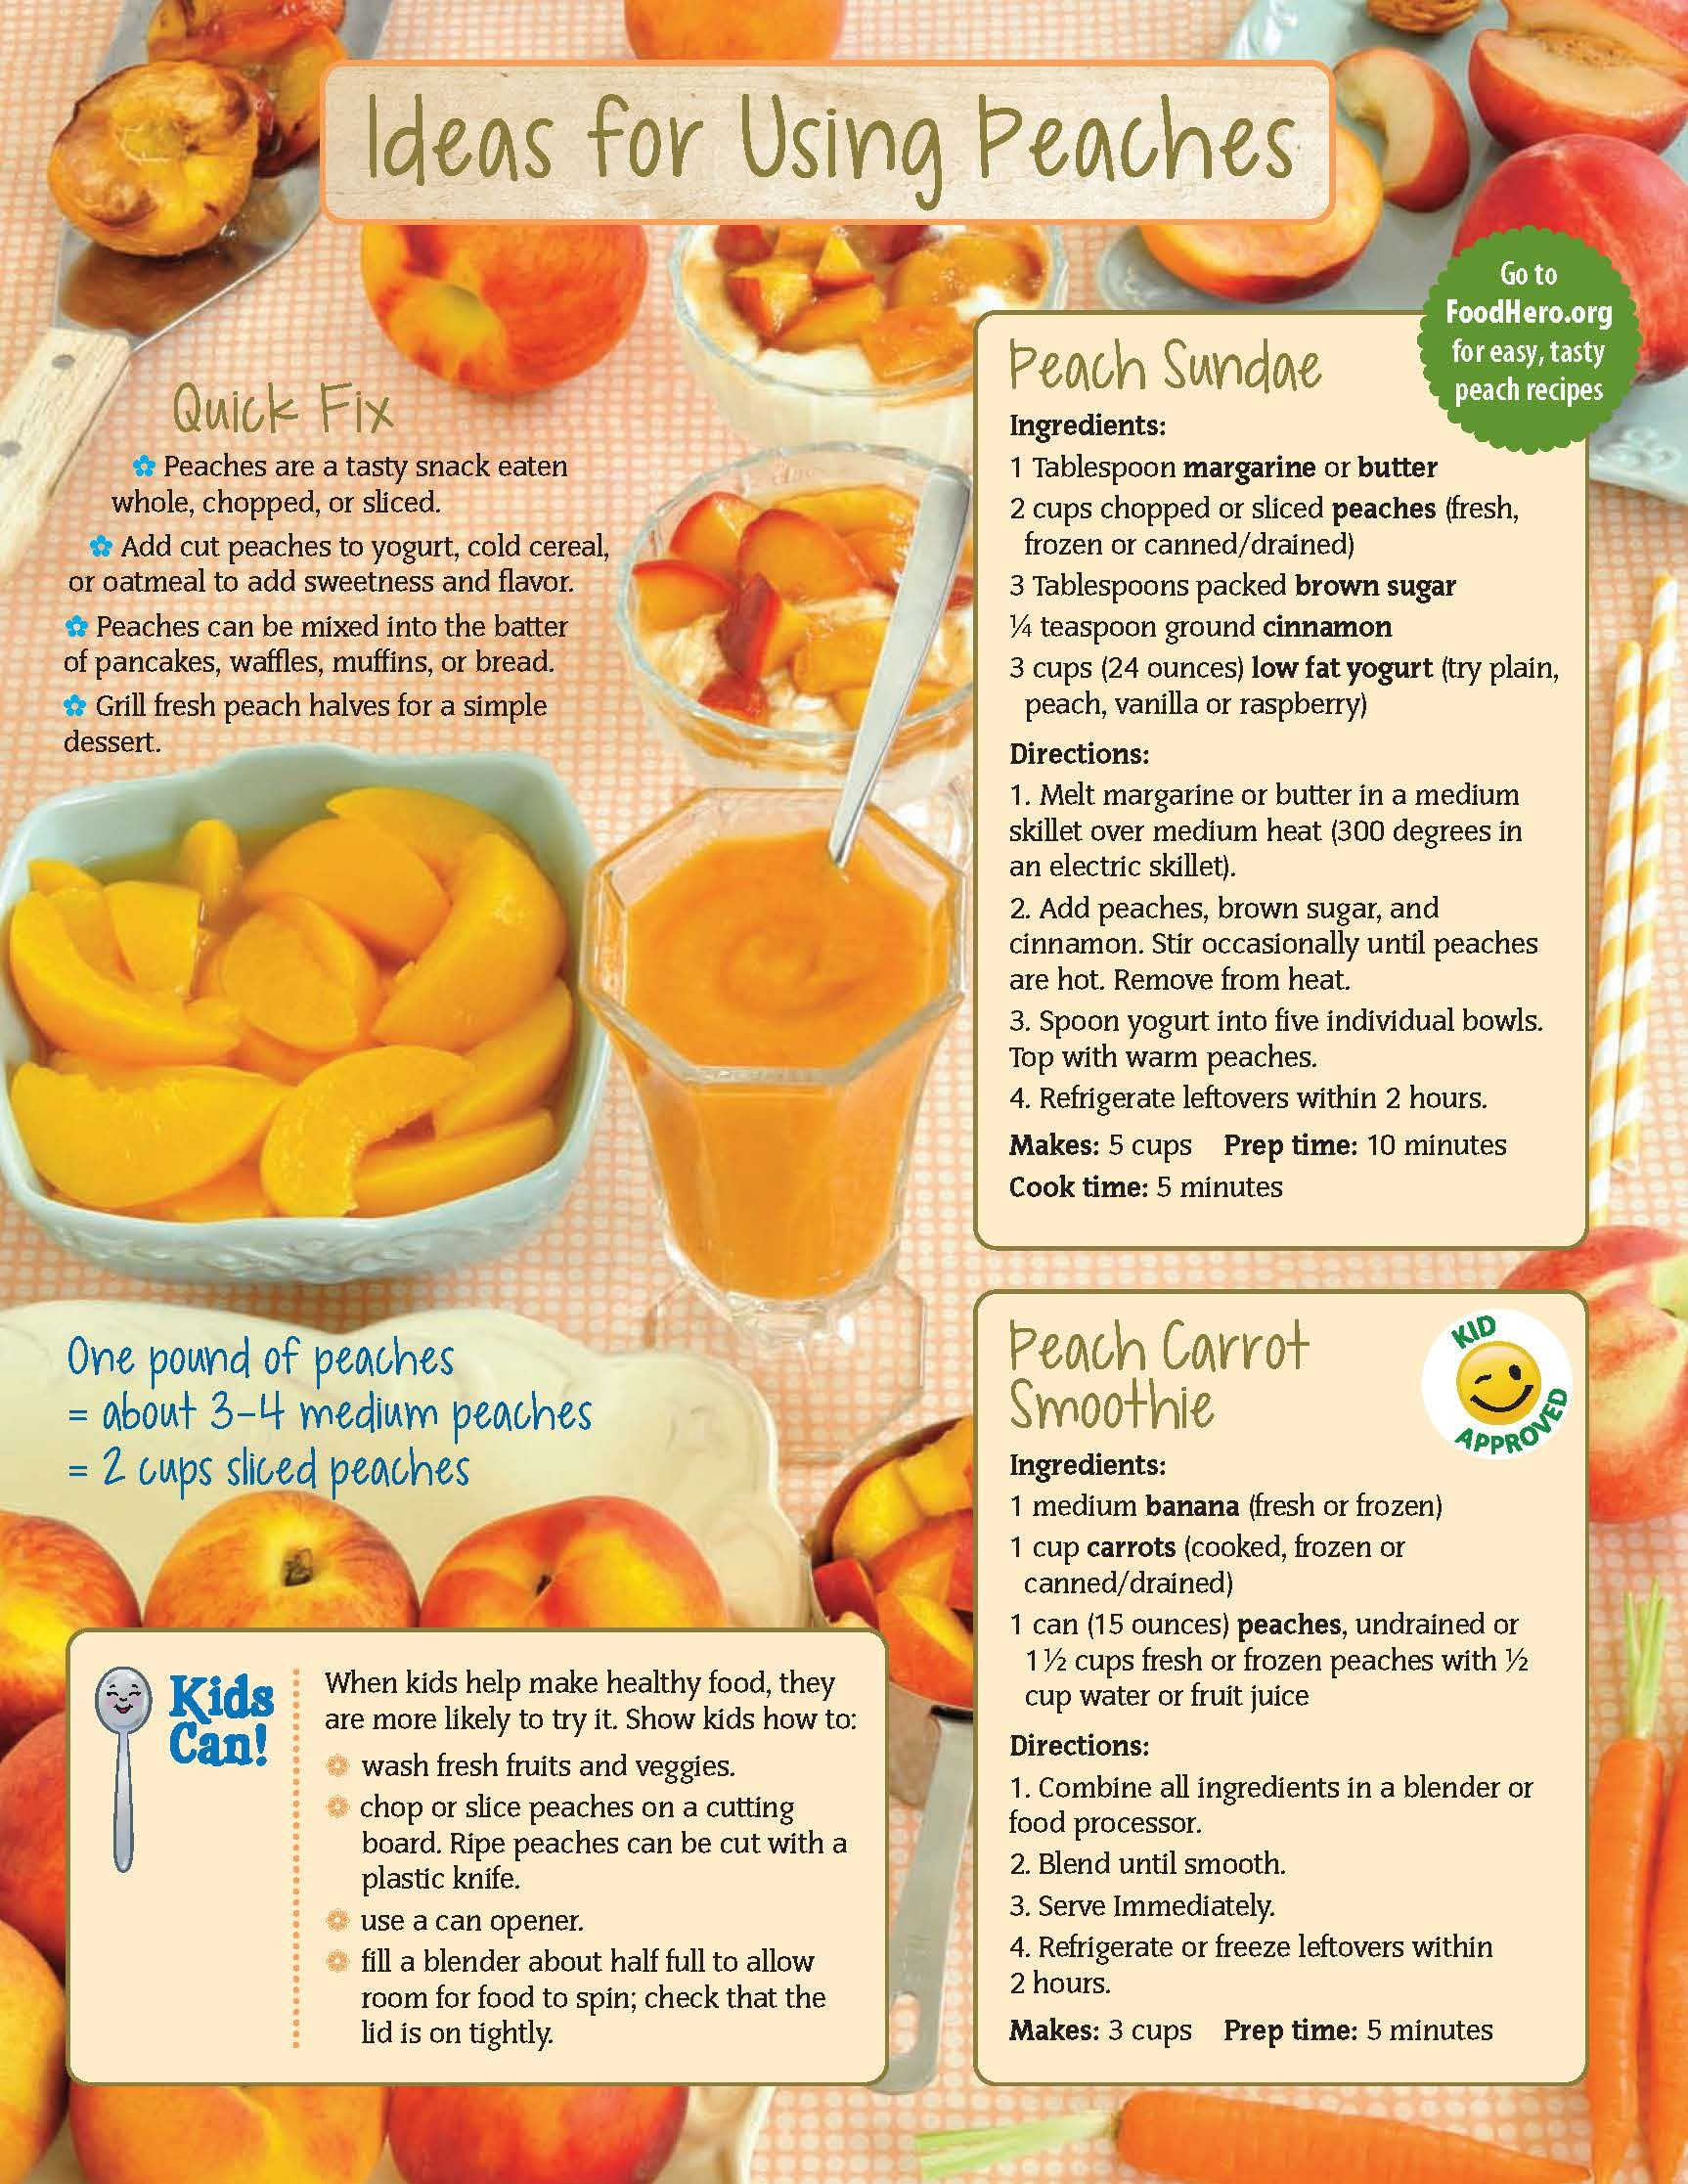 Cooking with peach food hero monthly food hero healthy recipes food hero monthly food hero healthy recipes that are fast fun and inexpensive healthy peach recipes food hero peach all about peach tips types forumfinder Gallery